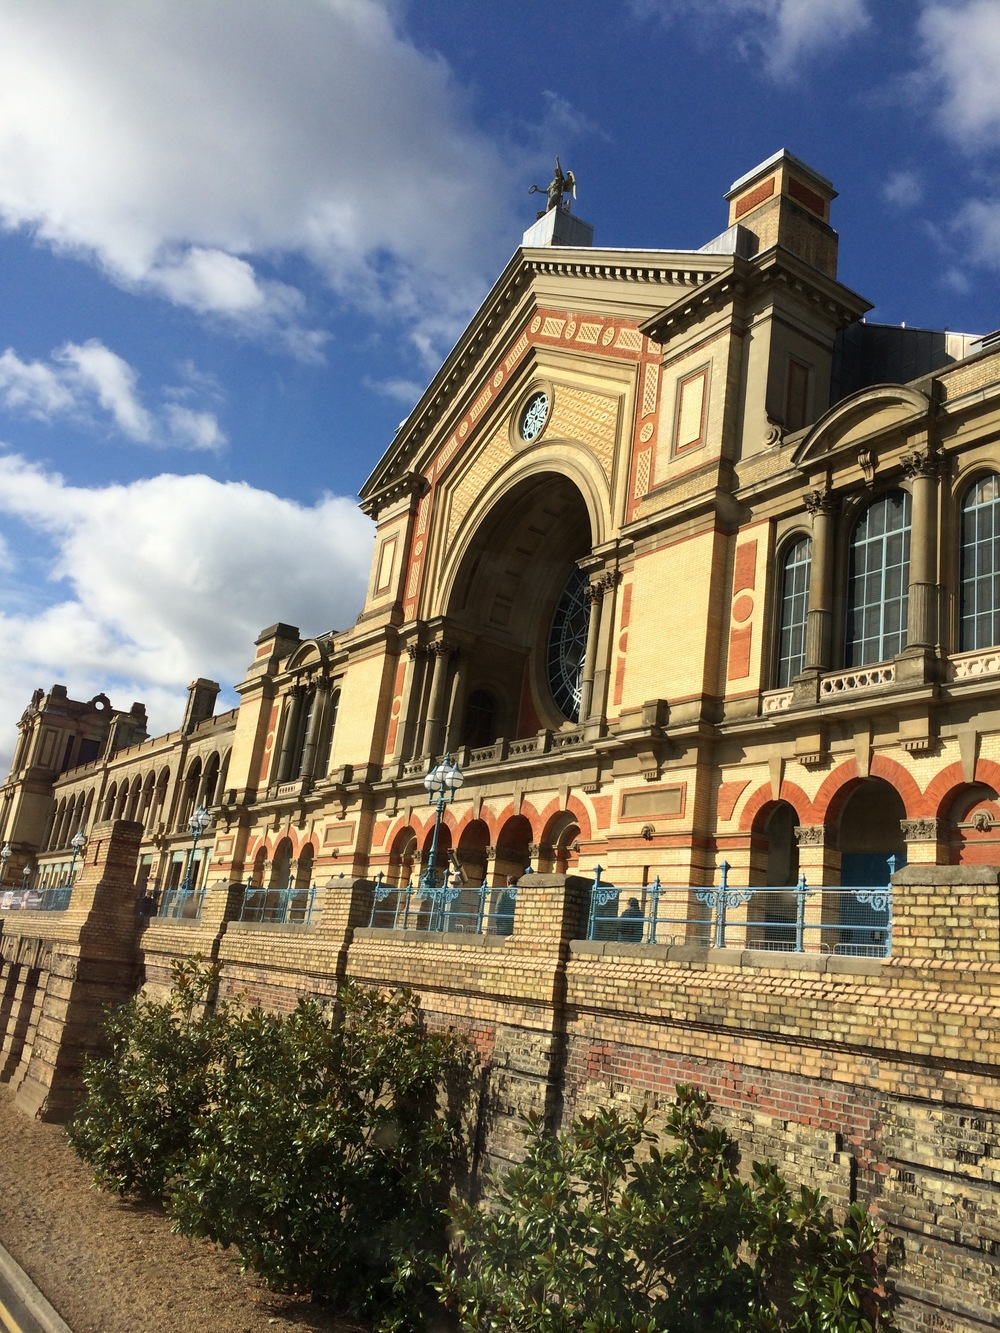 The huge exhibition space Alexandra Palace, located in North London